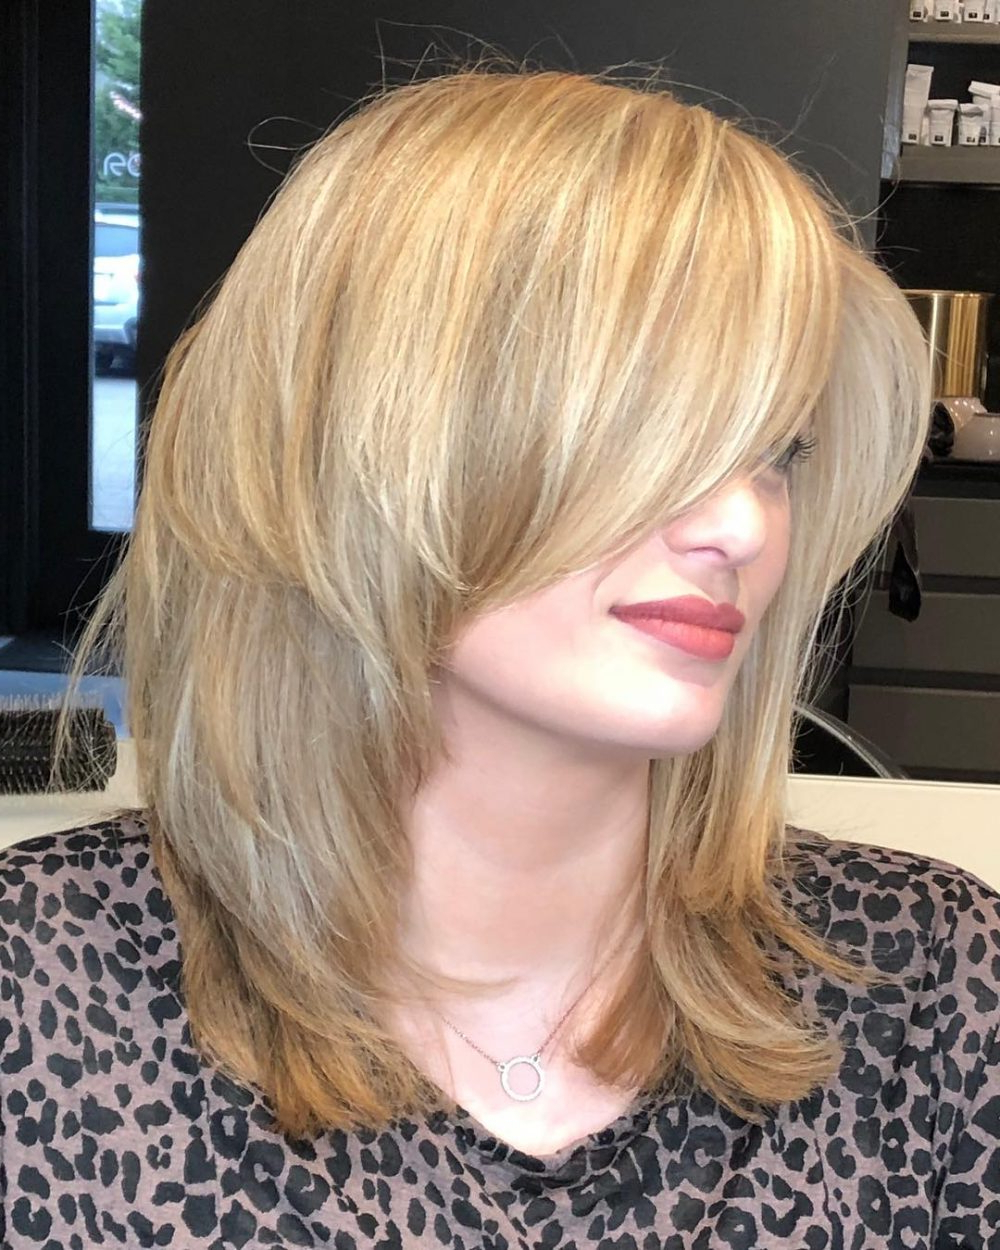 23 Perfect Medium Hairstyles For Square Faces (popular For 2019) Within 2018 Medium Haircuts With Razored Face Framing Layers (View 14 of 20)